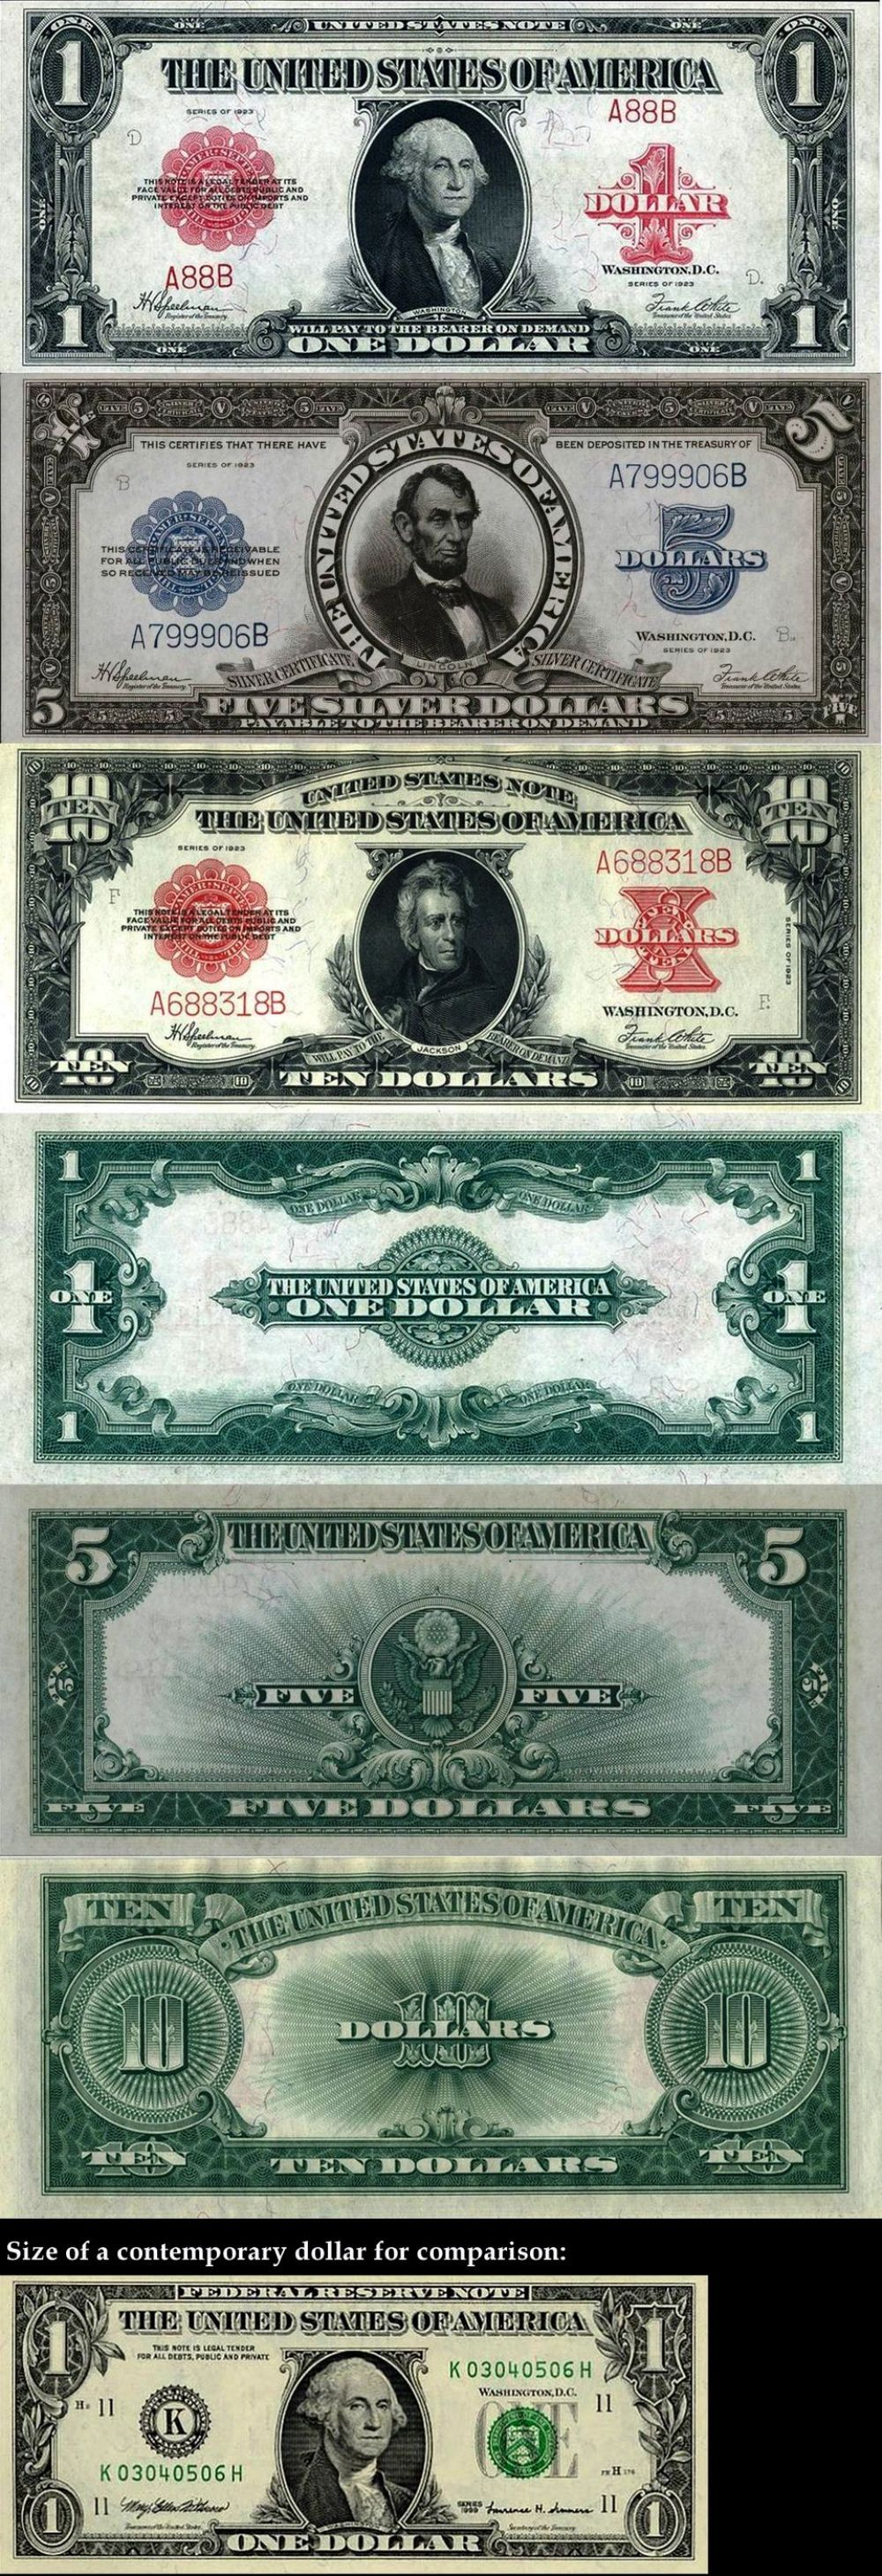 A Fascinating Look At American Currency In 1923.    They say old money is the best kind of money so I guess it really is true after all    :-)